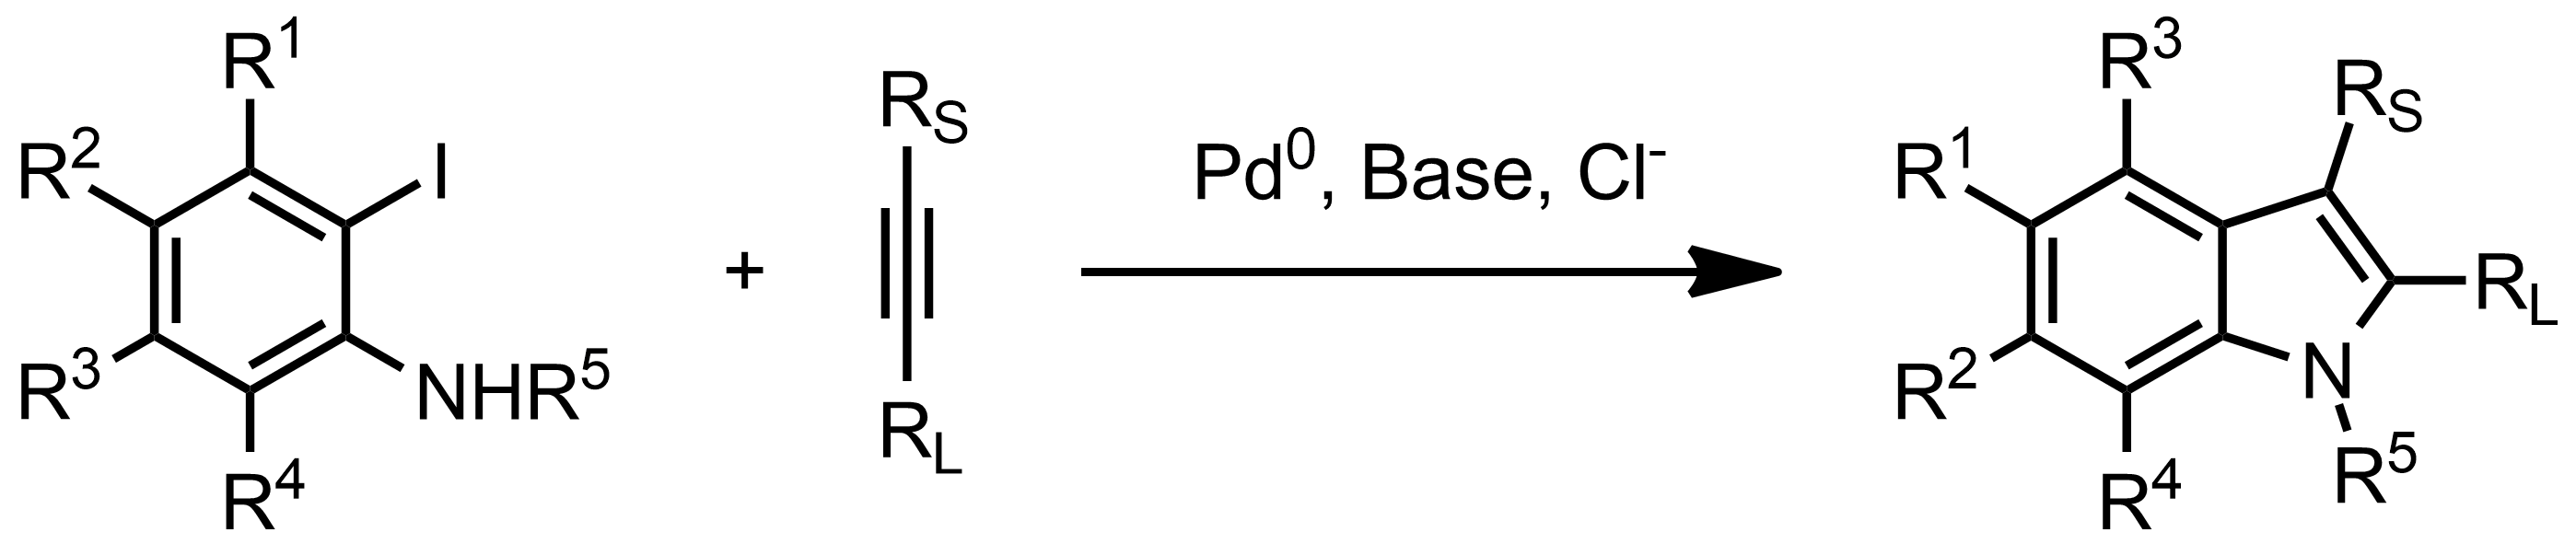 Schematic representation of the Larock Indole Synthesis.